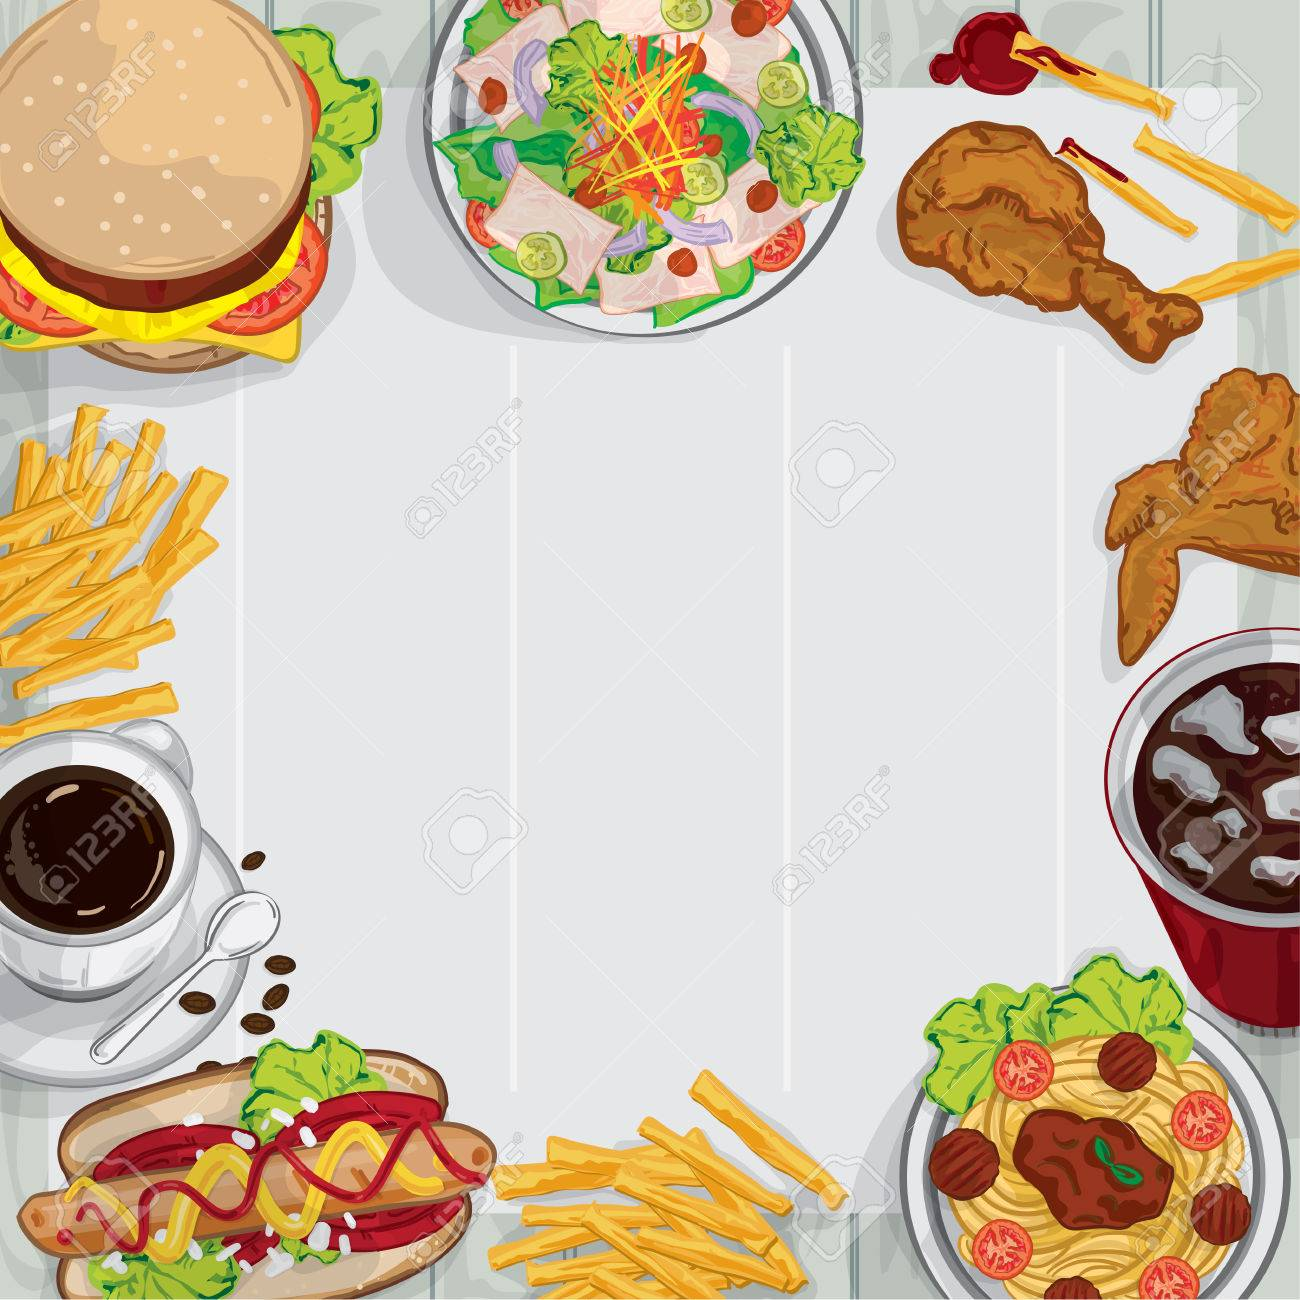 Menu food drawing graphic design illustrate objects template